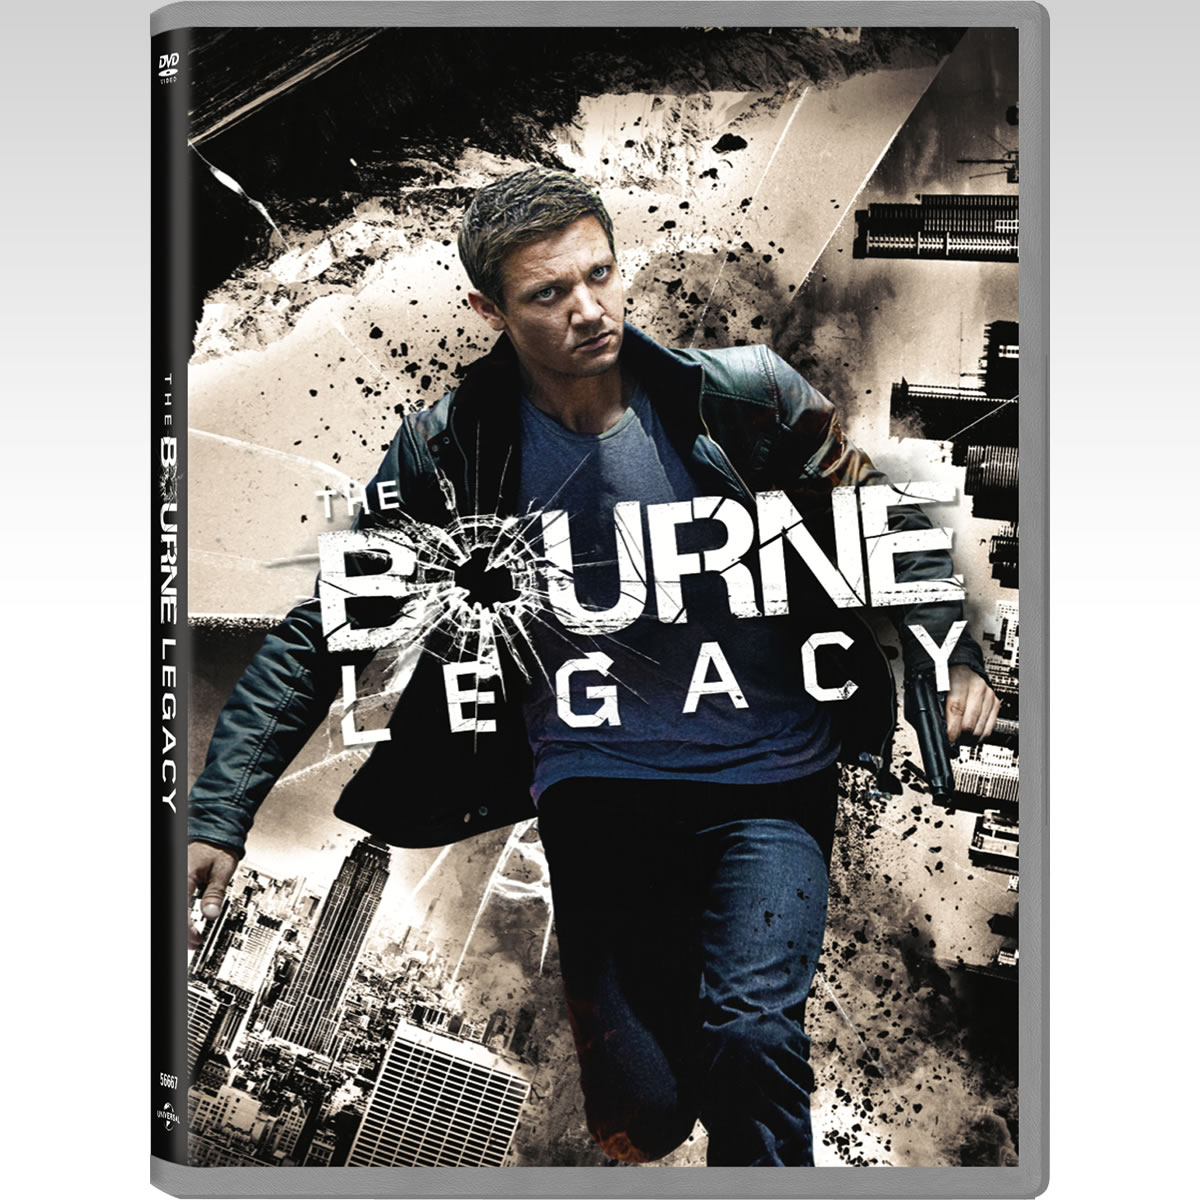 THE BOURNE LEGACY - Η ΚΛΗΡΟΝΟΜΙΑ ΤΟΥ ΜΠΟΡΝ Bullet Special Edition (DVD)